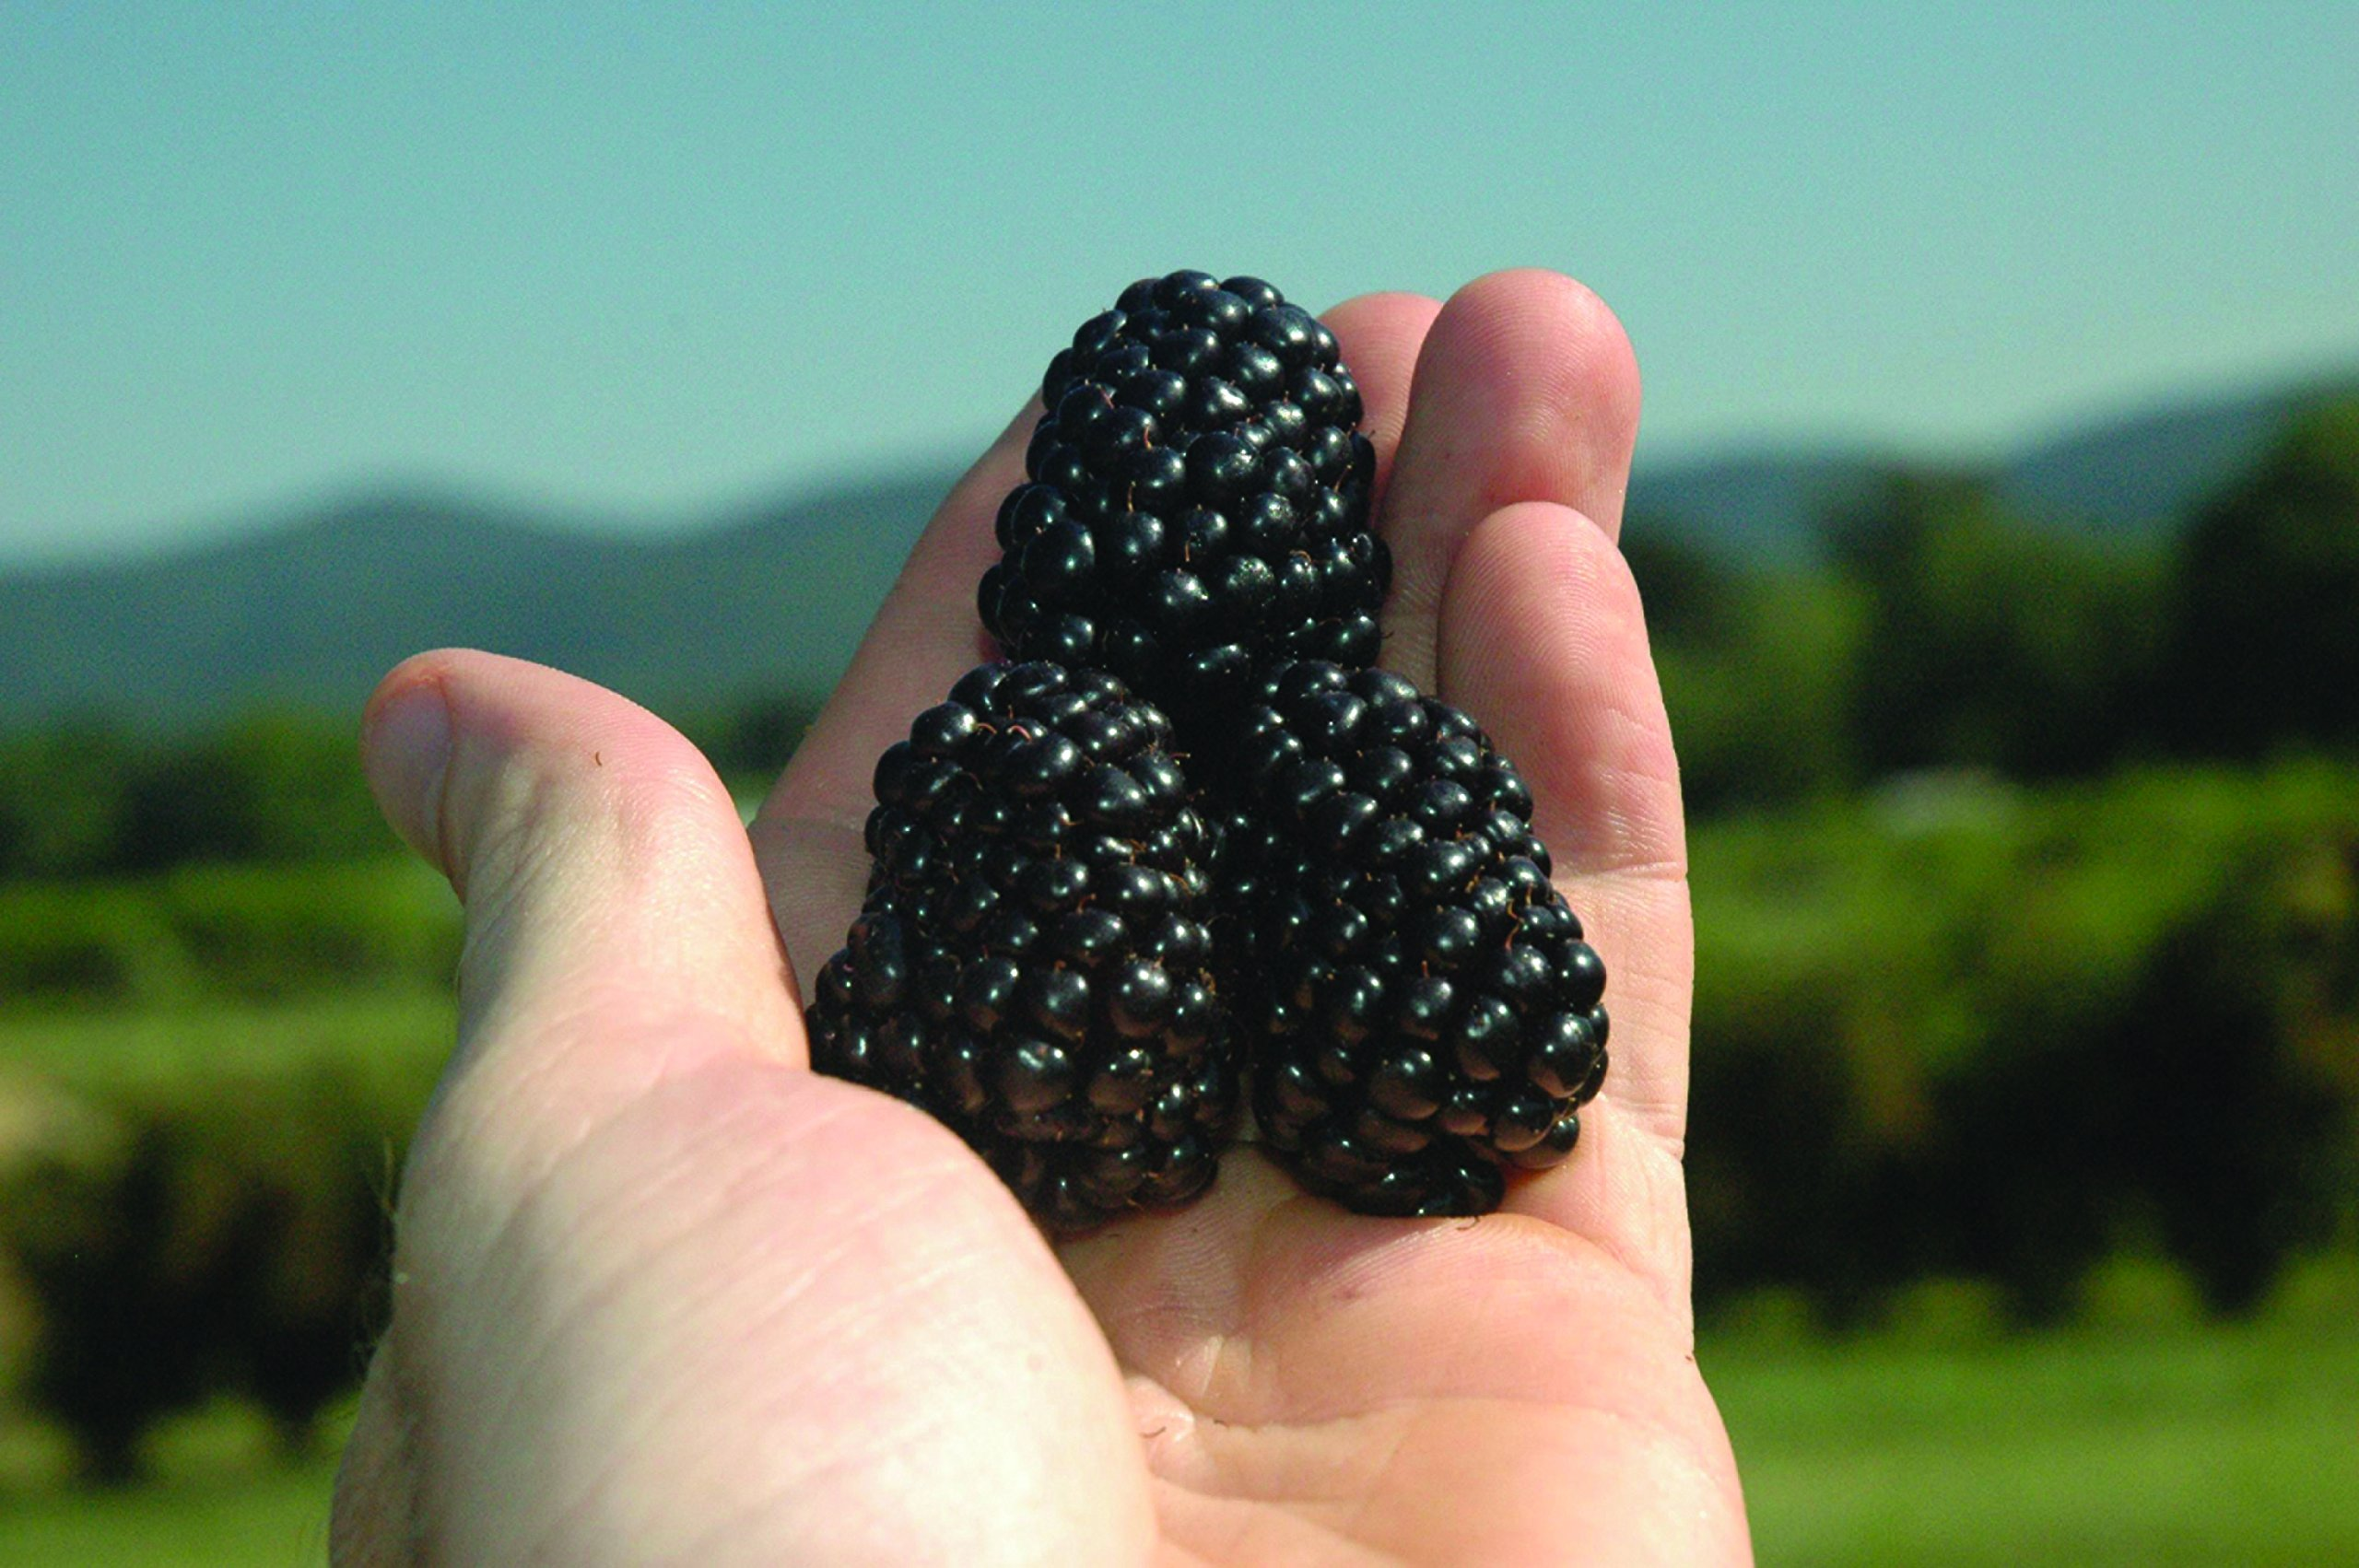 Burpee Thornless Blackberry Prime-Ark 'Freedom' shipped as FIVE BARE ROOT PLANTS by Burpee (Image #4)